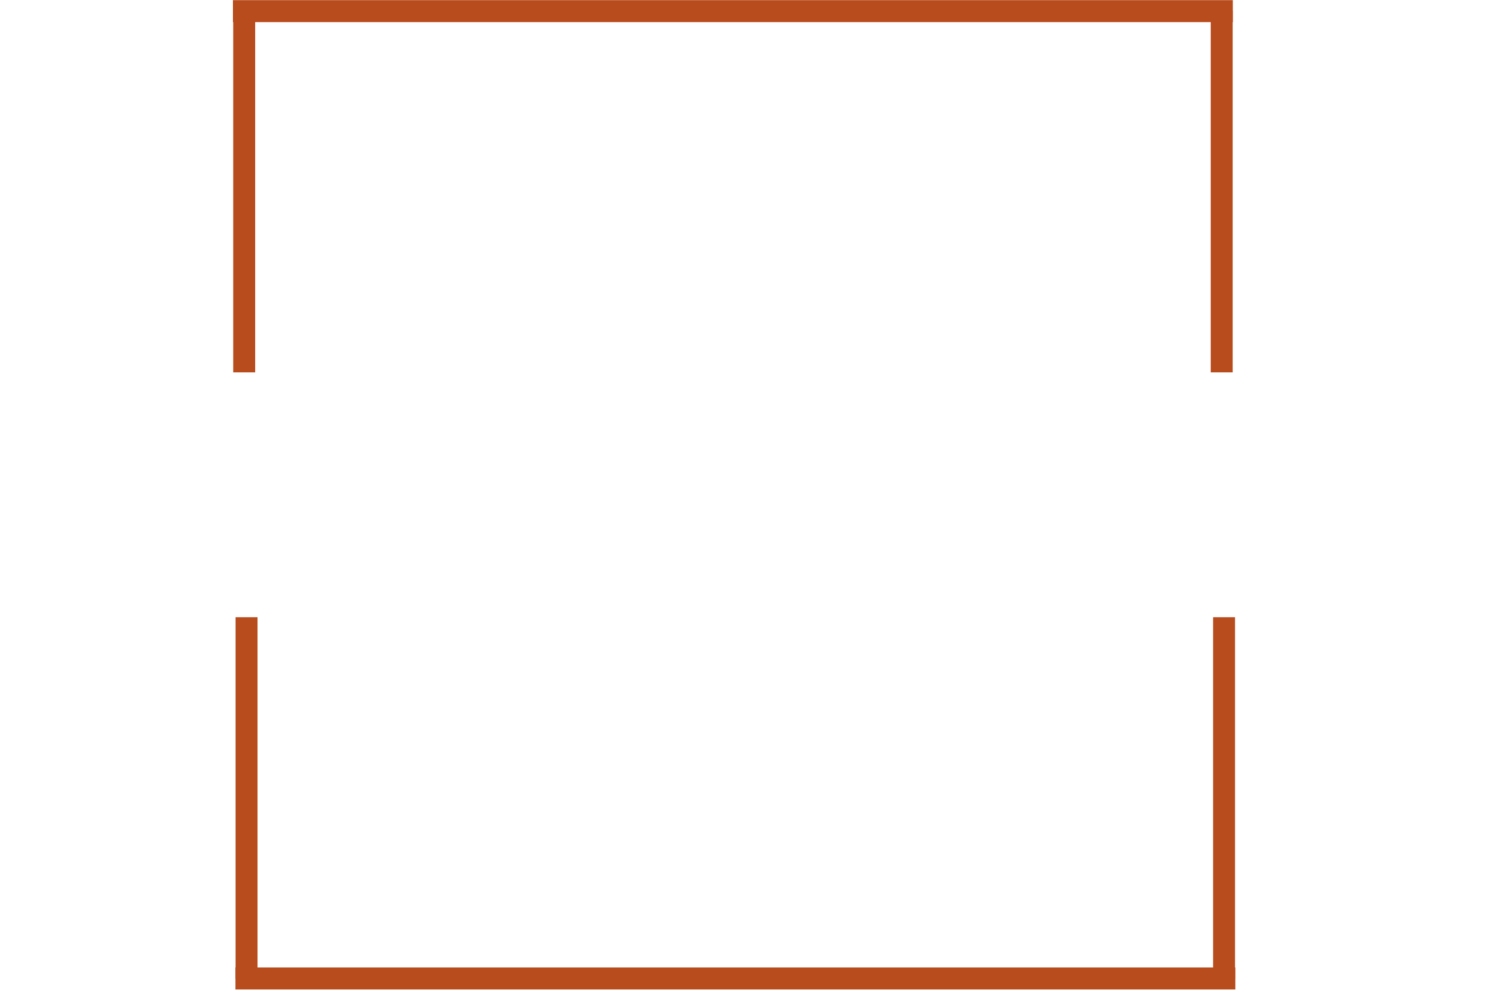 MSH Strategy